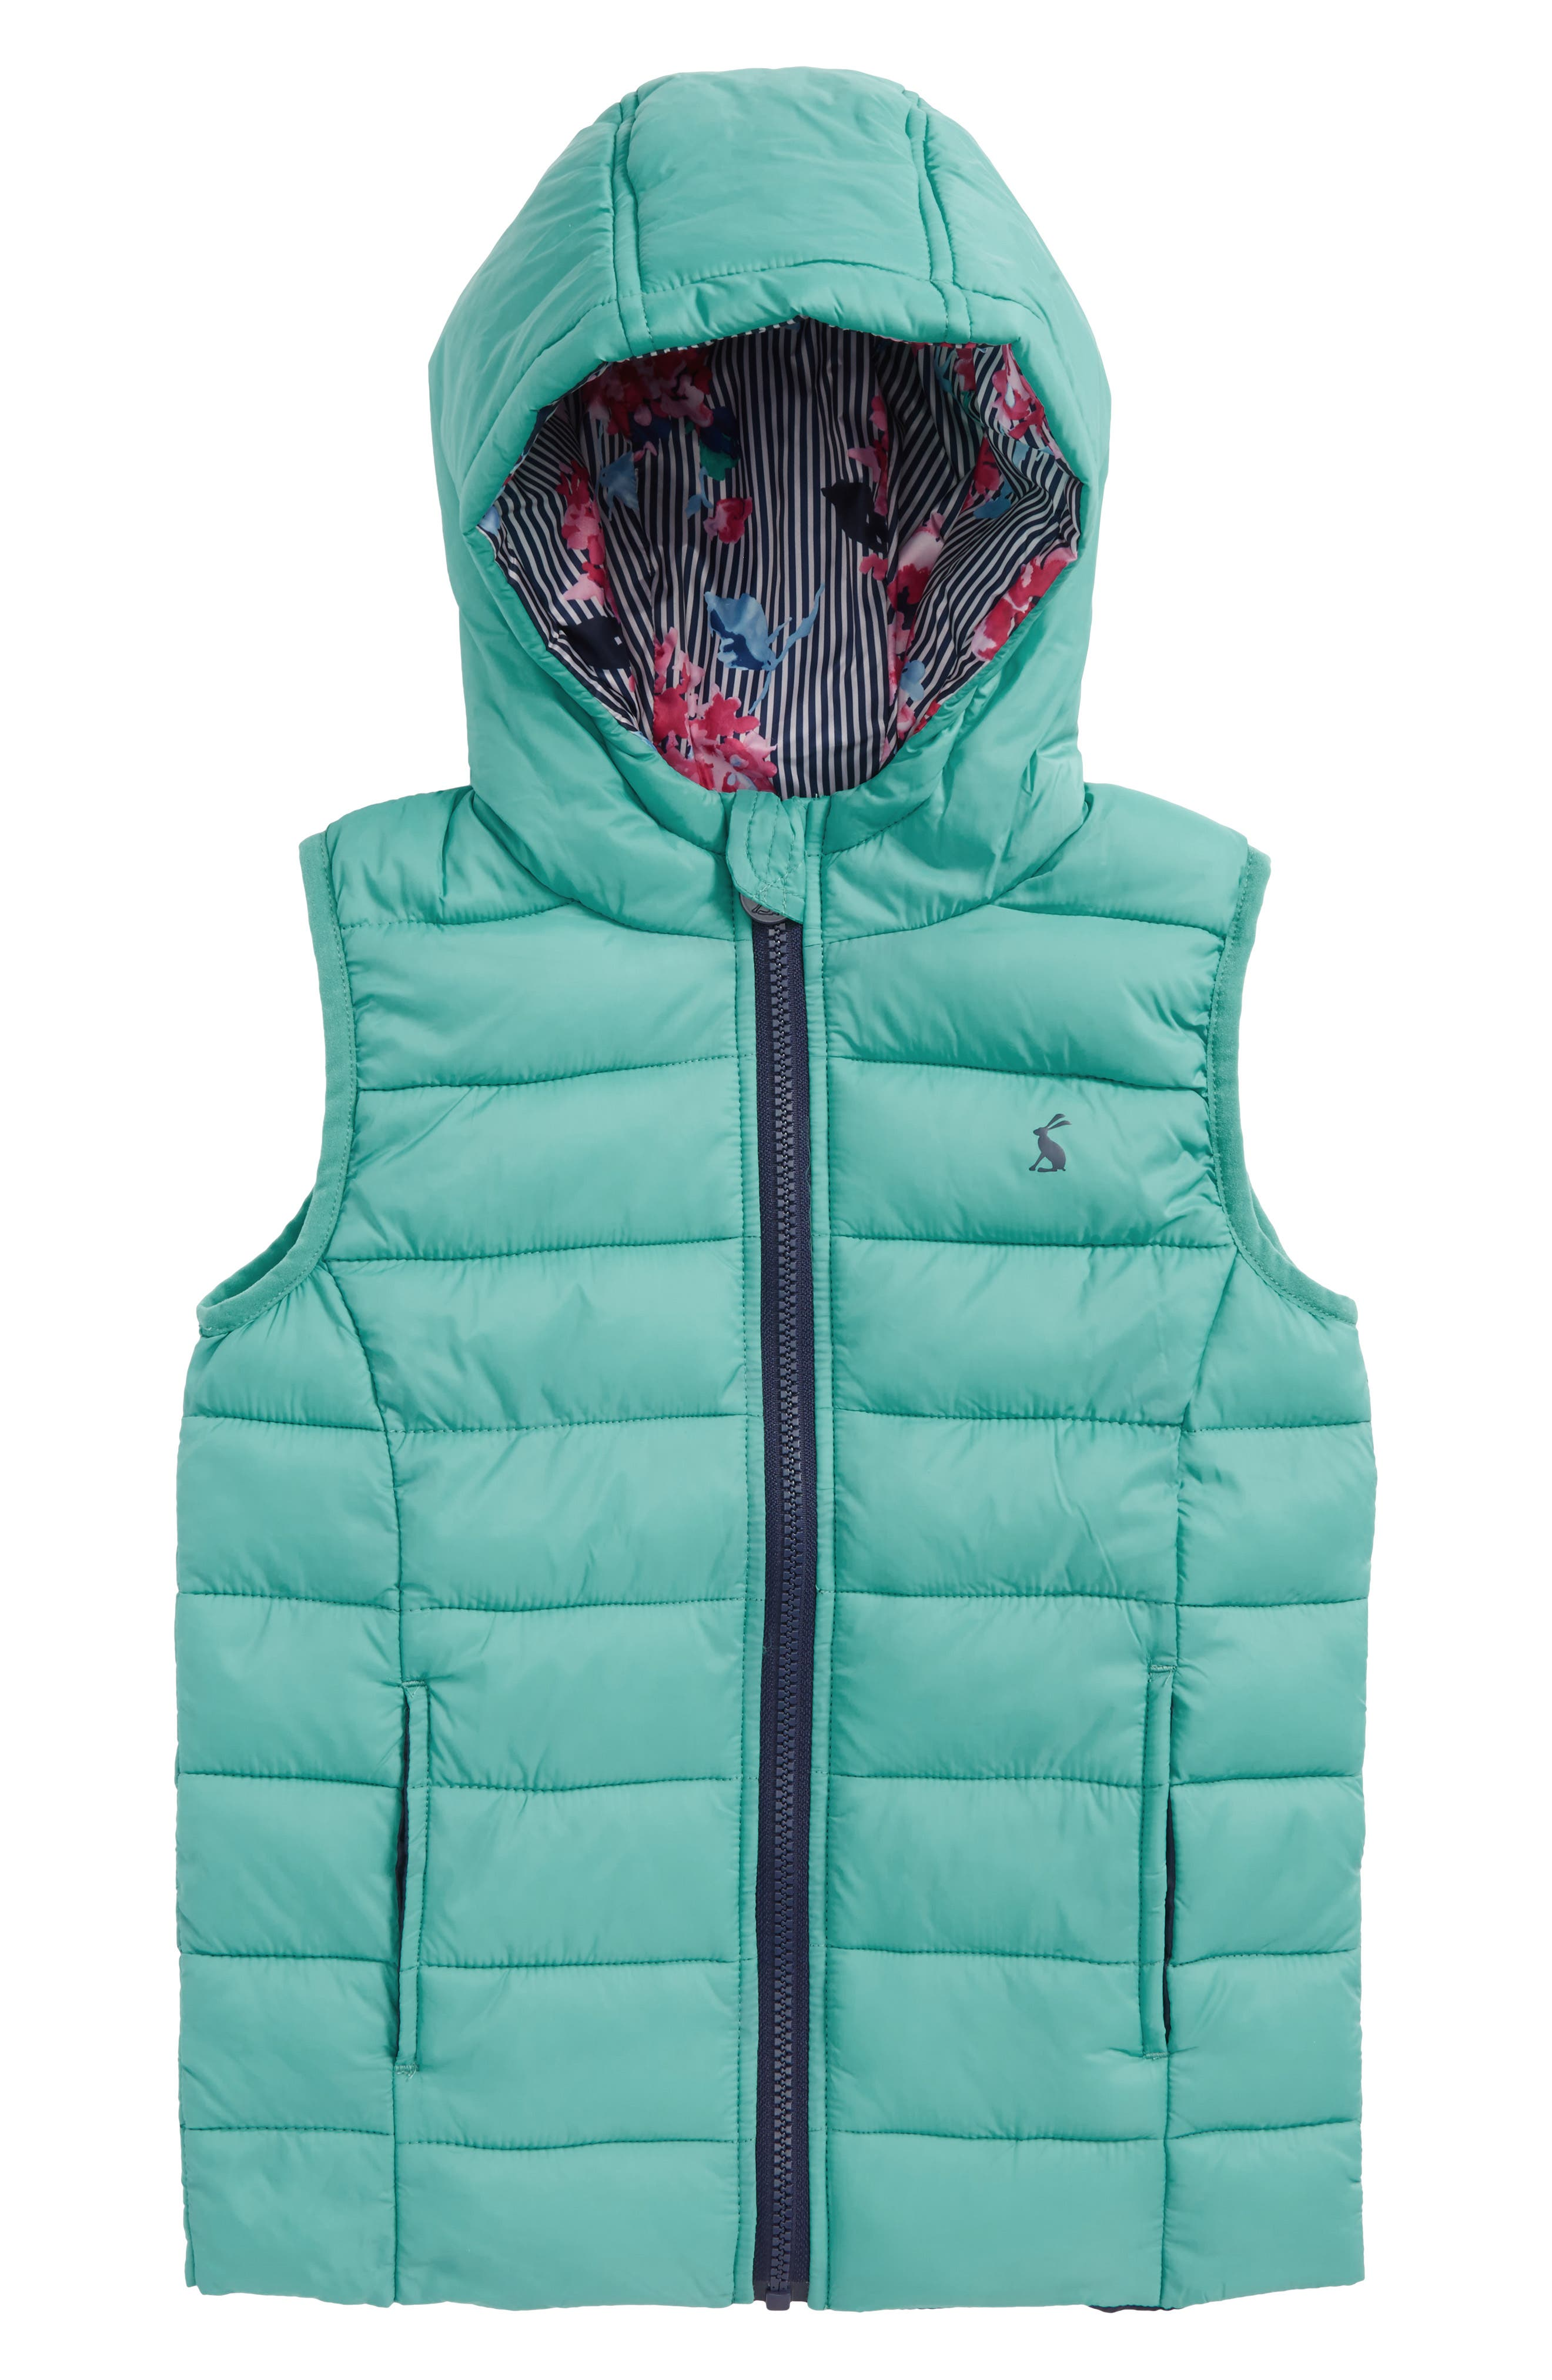 Joules Printed Packaway Vest (Toddler Girls & Little Girls)